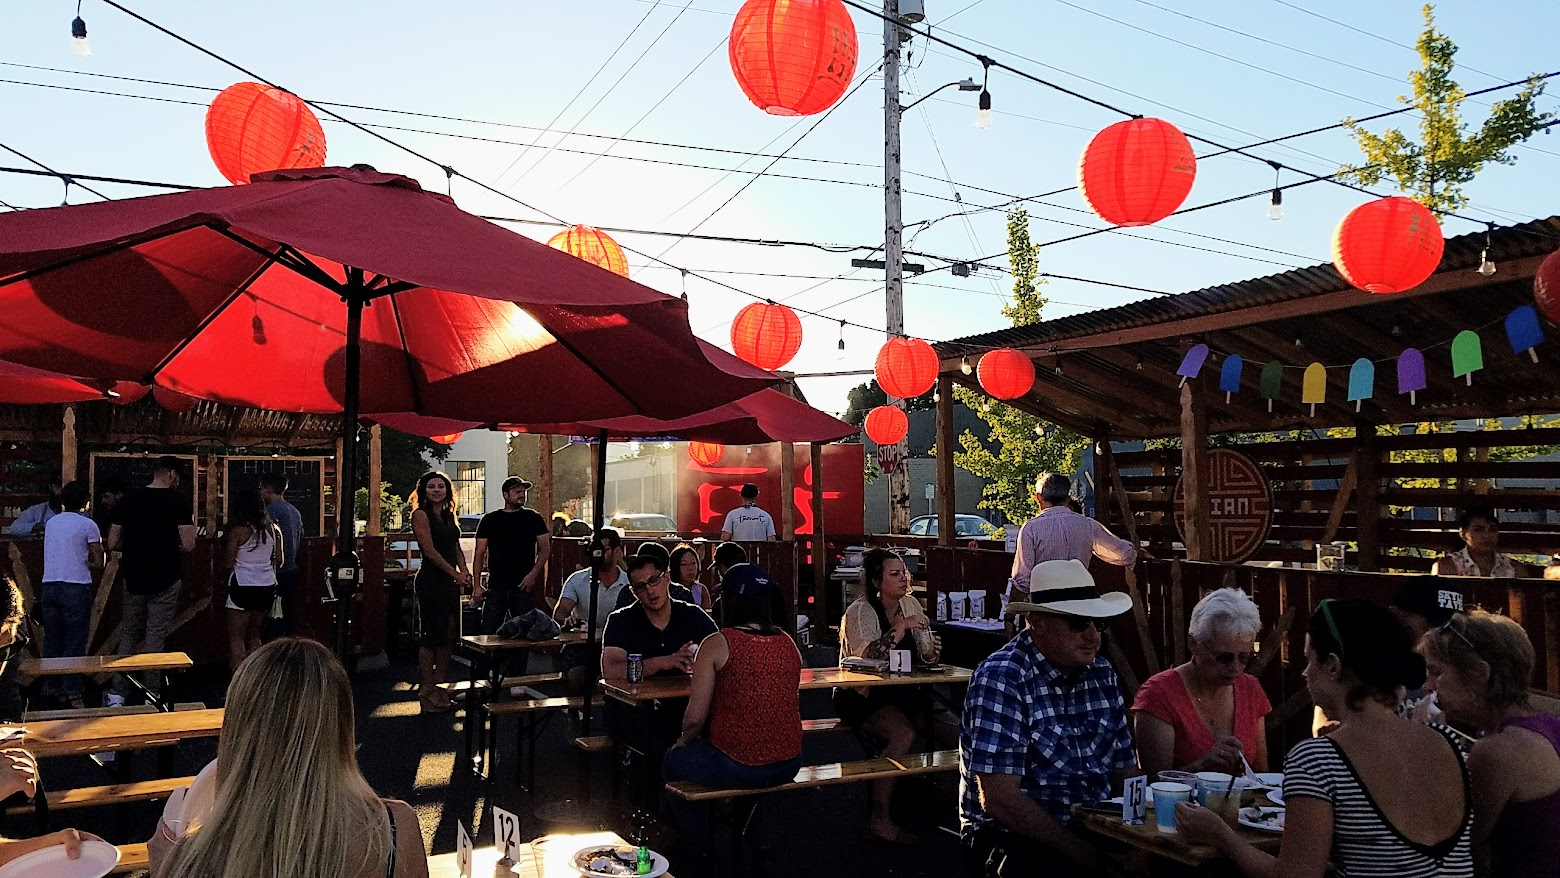 Mian PDX is doing their Chinese-American food and drinks in an Asian Night Market they are calling Mama Huhu in the Renata parking five days a week, Wednesday- Sunday 5 PM - 10 PM till September 3rd